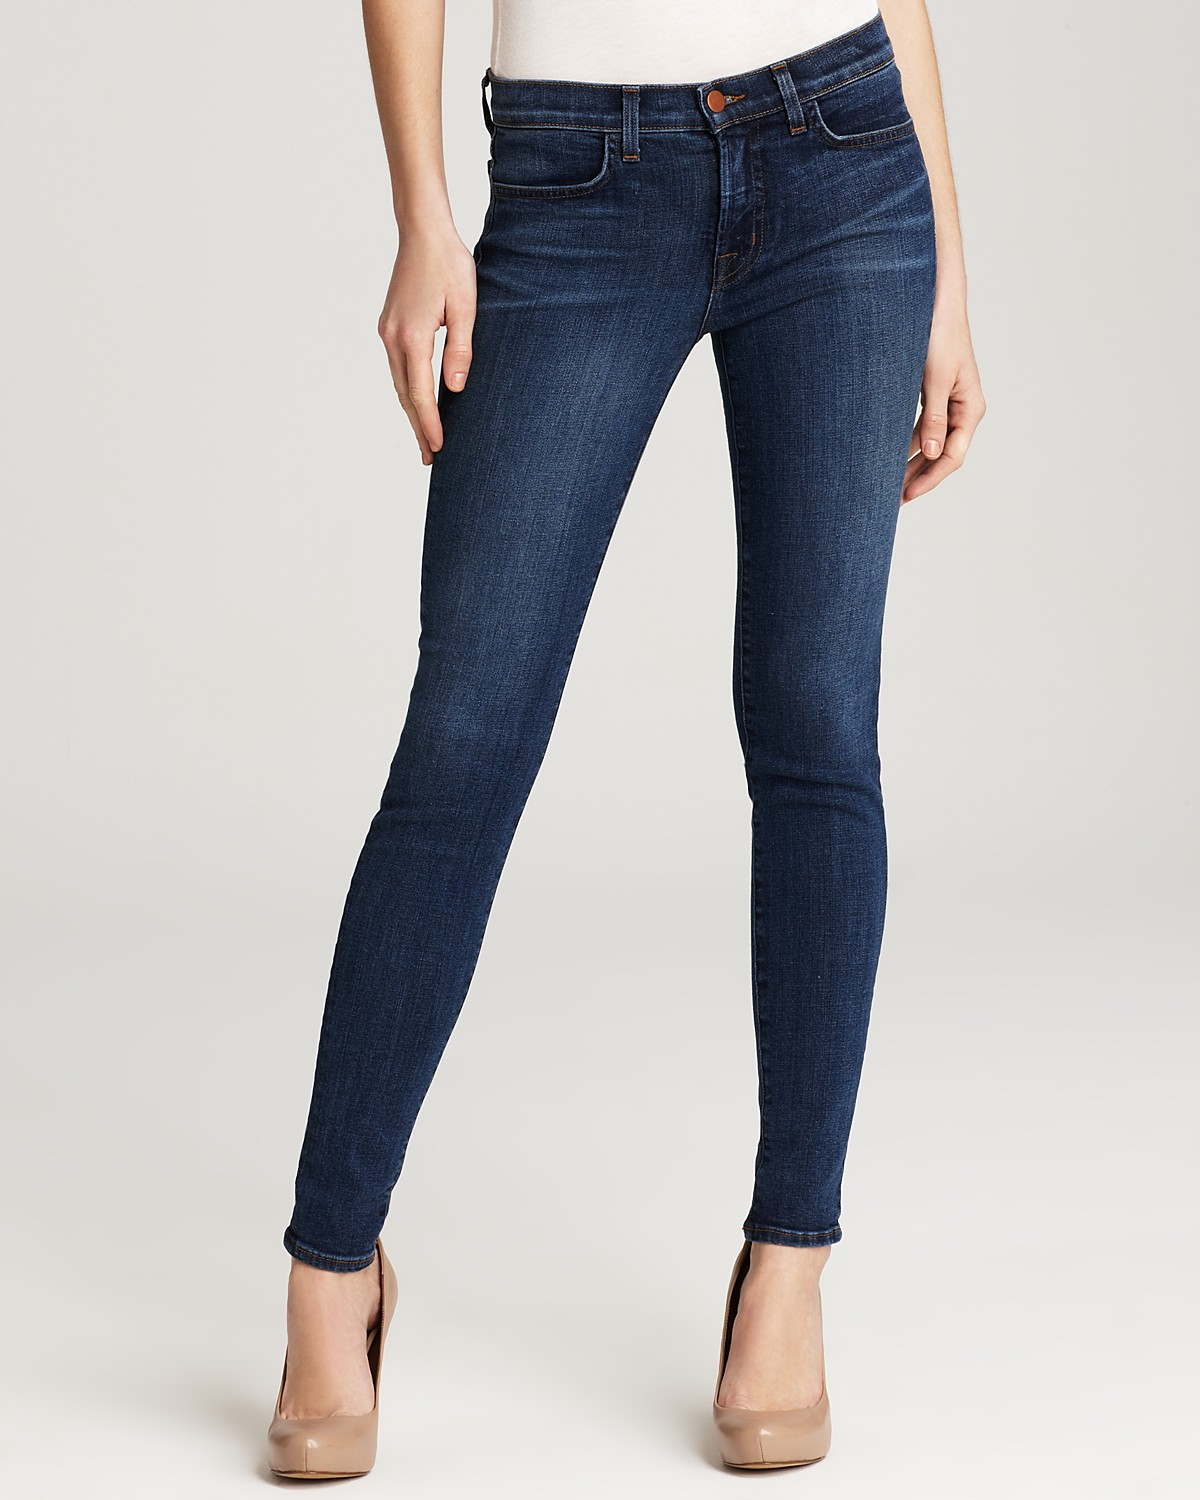 Girls' jeans come in a variety of styles, such as straight leg, boot leg, and skinny to fit her shape and personal preferences. Straight leg This means she'll have .